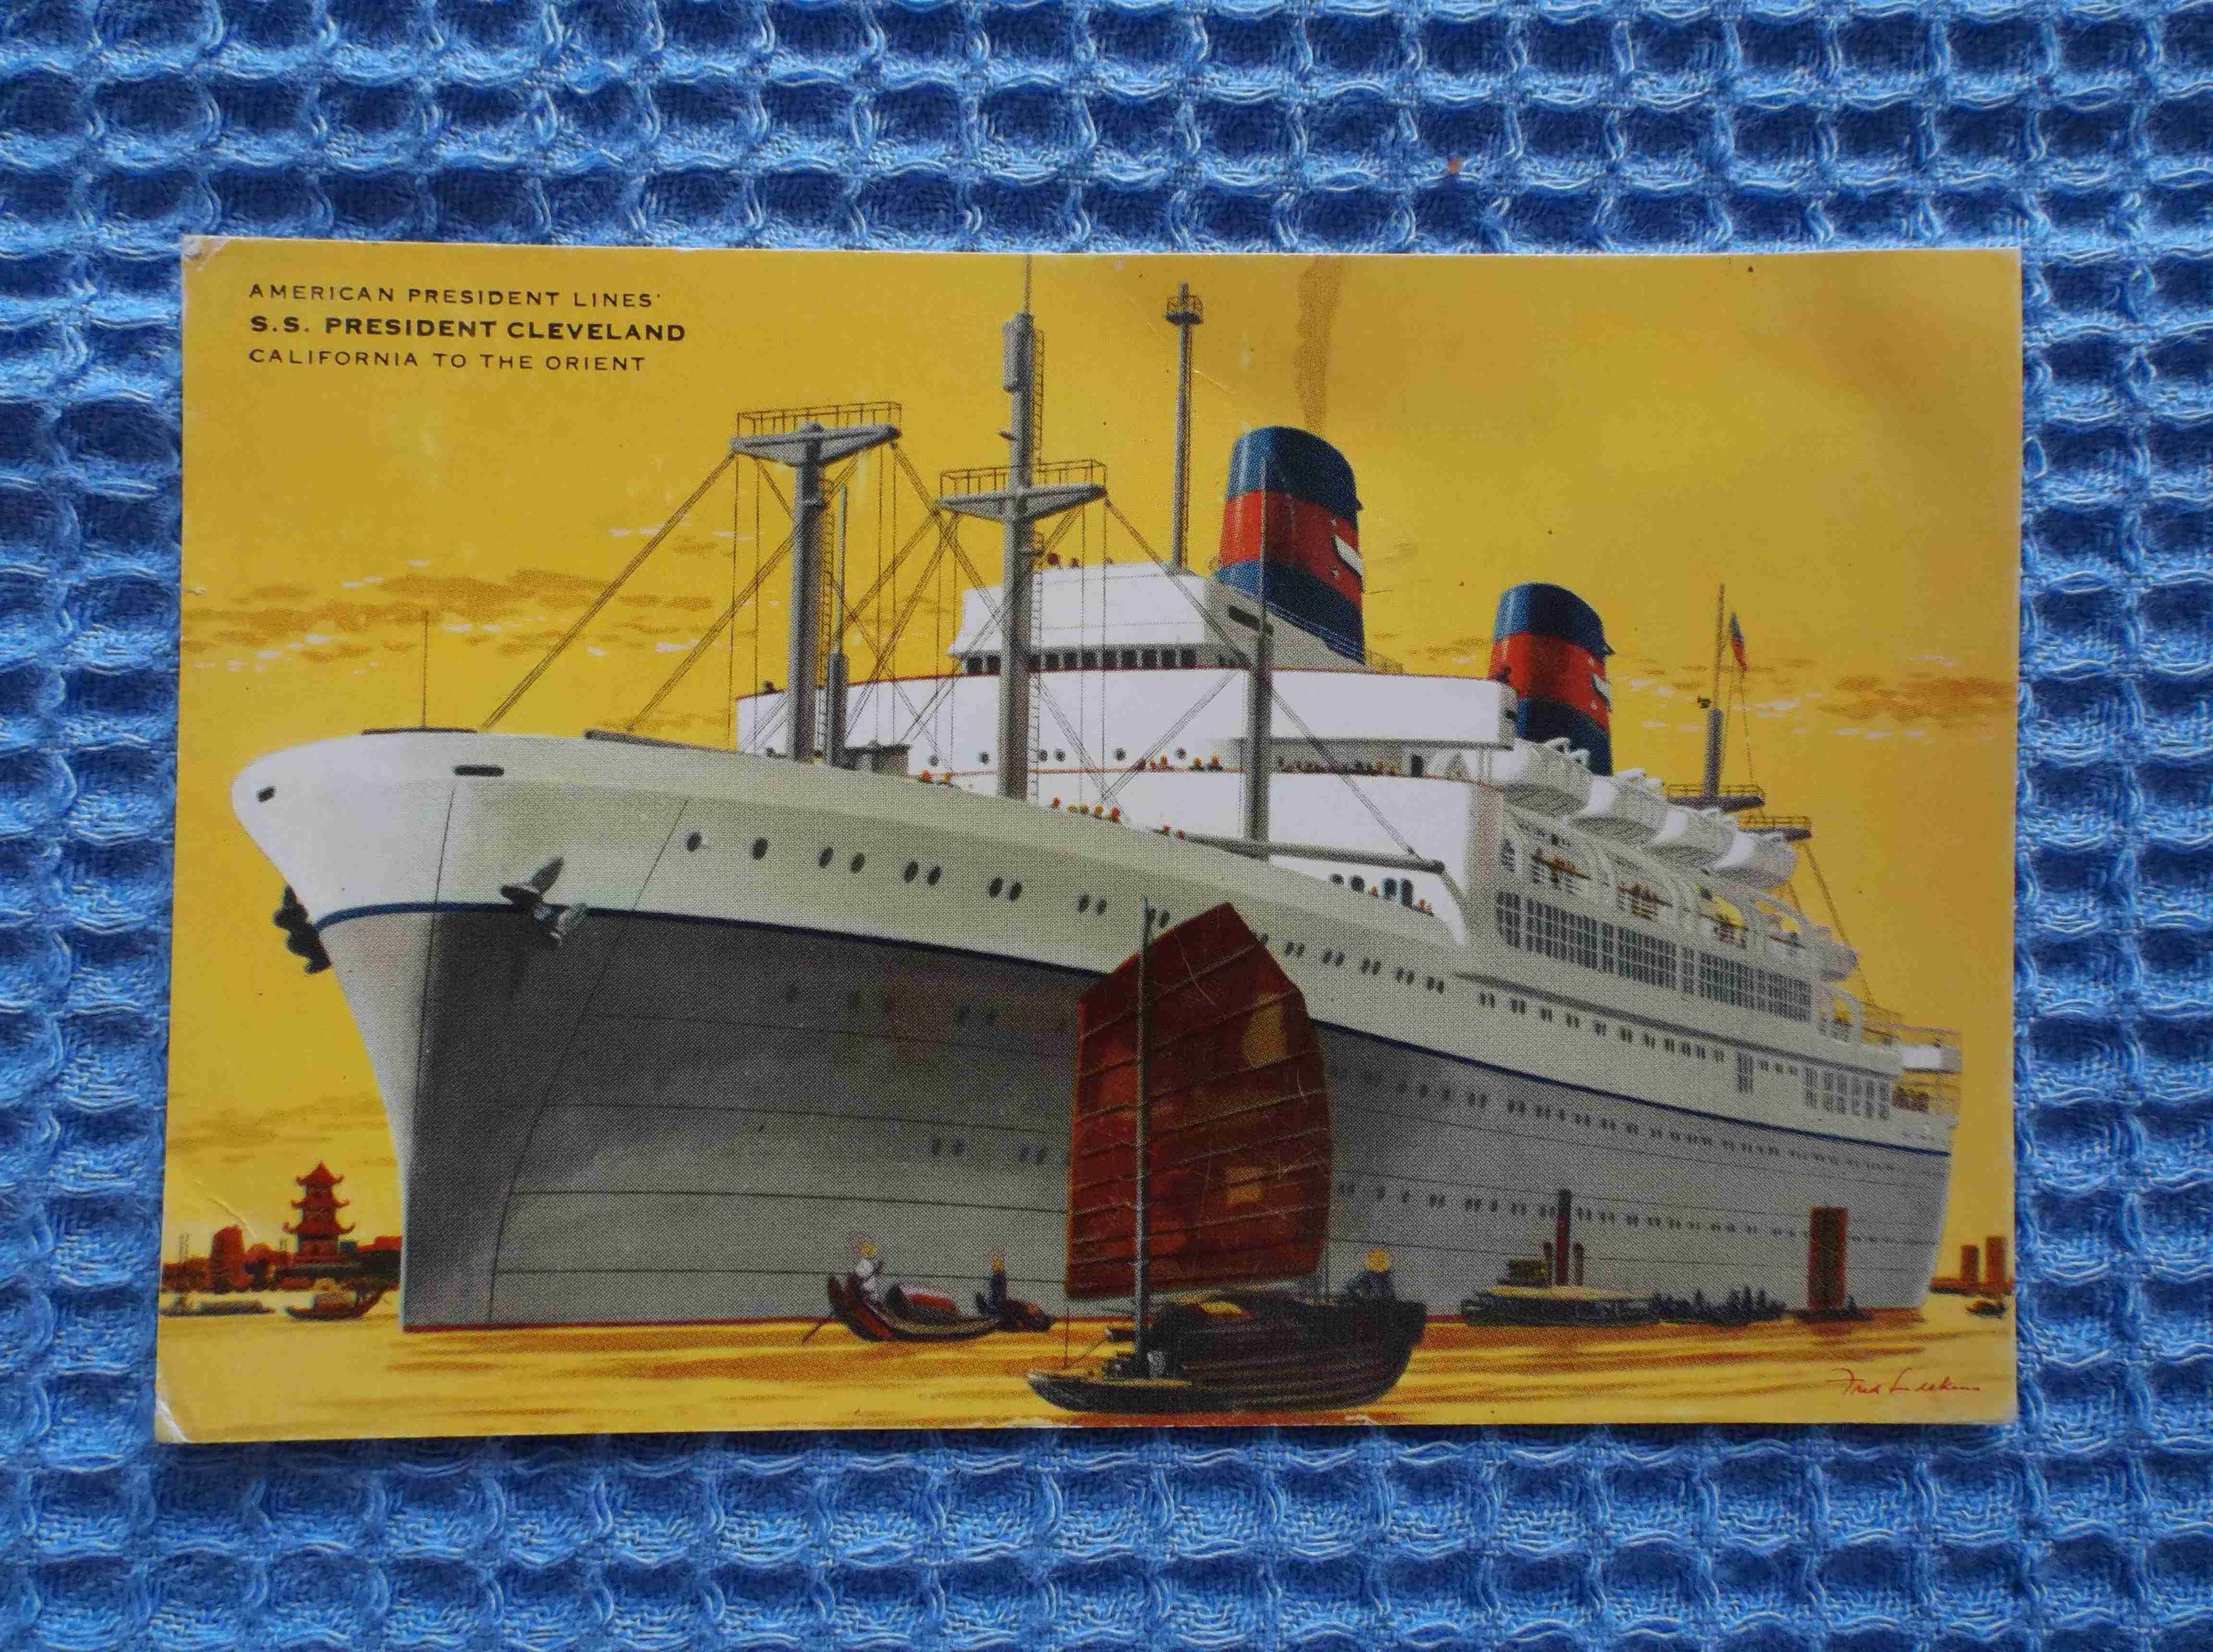 FULL COLOUR USED POSTCARD FROM THE VESSEL THE SS PRESIDENT CLEVELAND FROM THE AMERICAN PRESIDENTS LINE